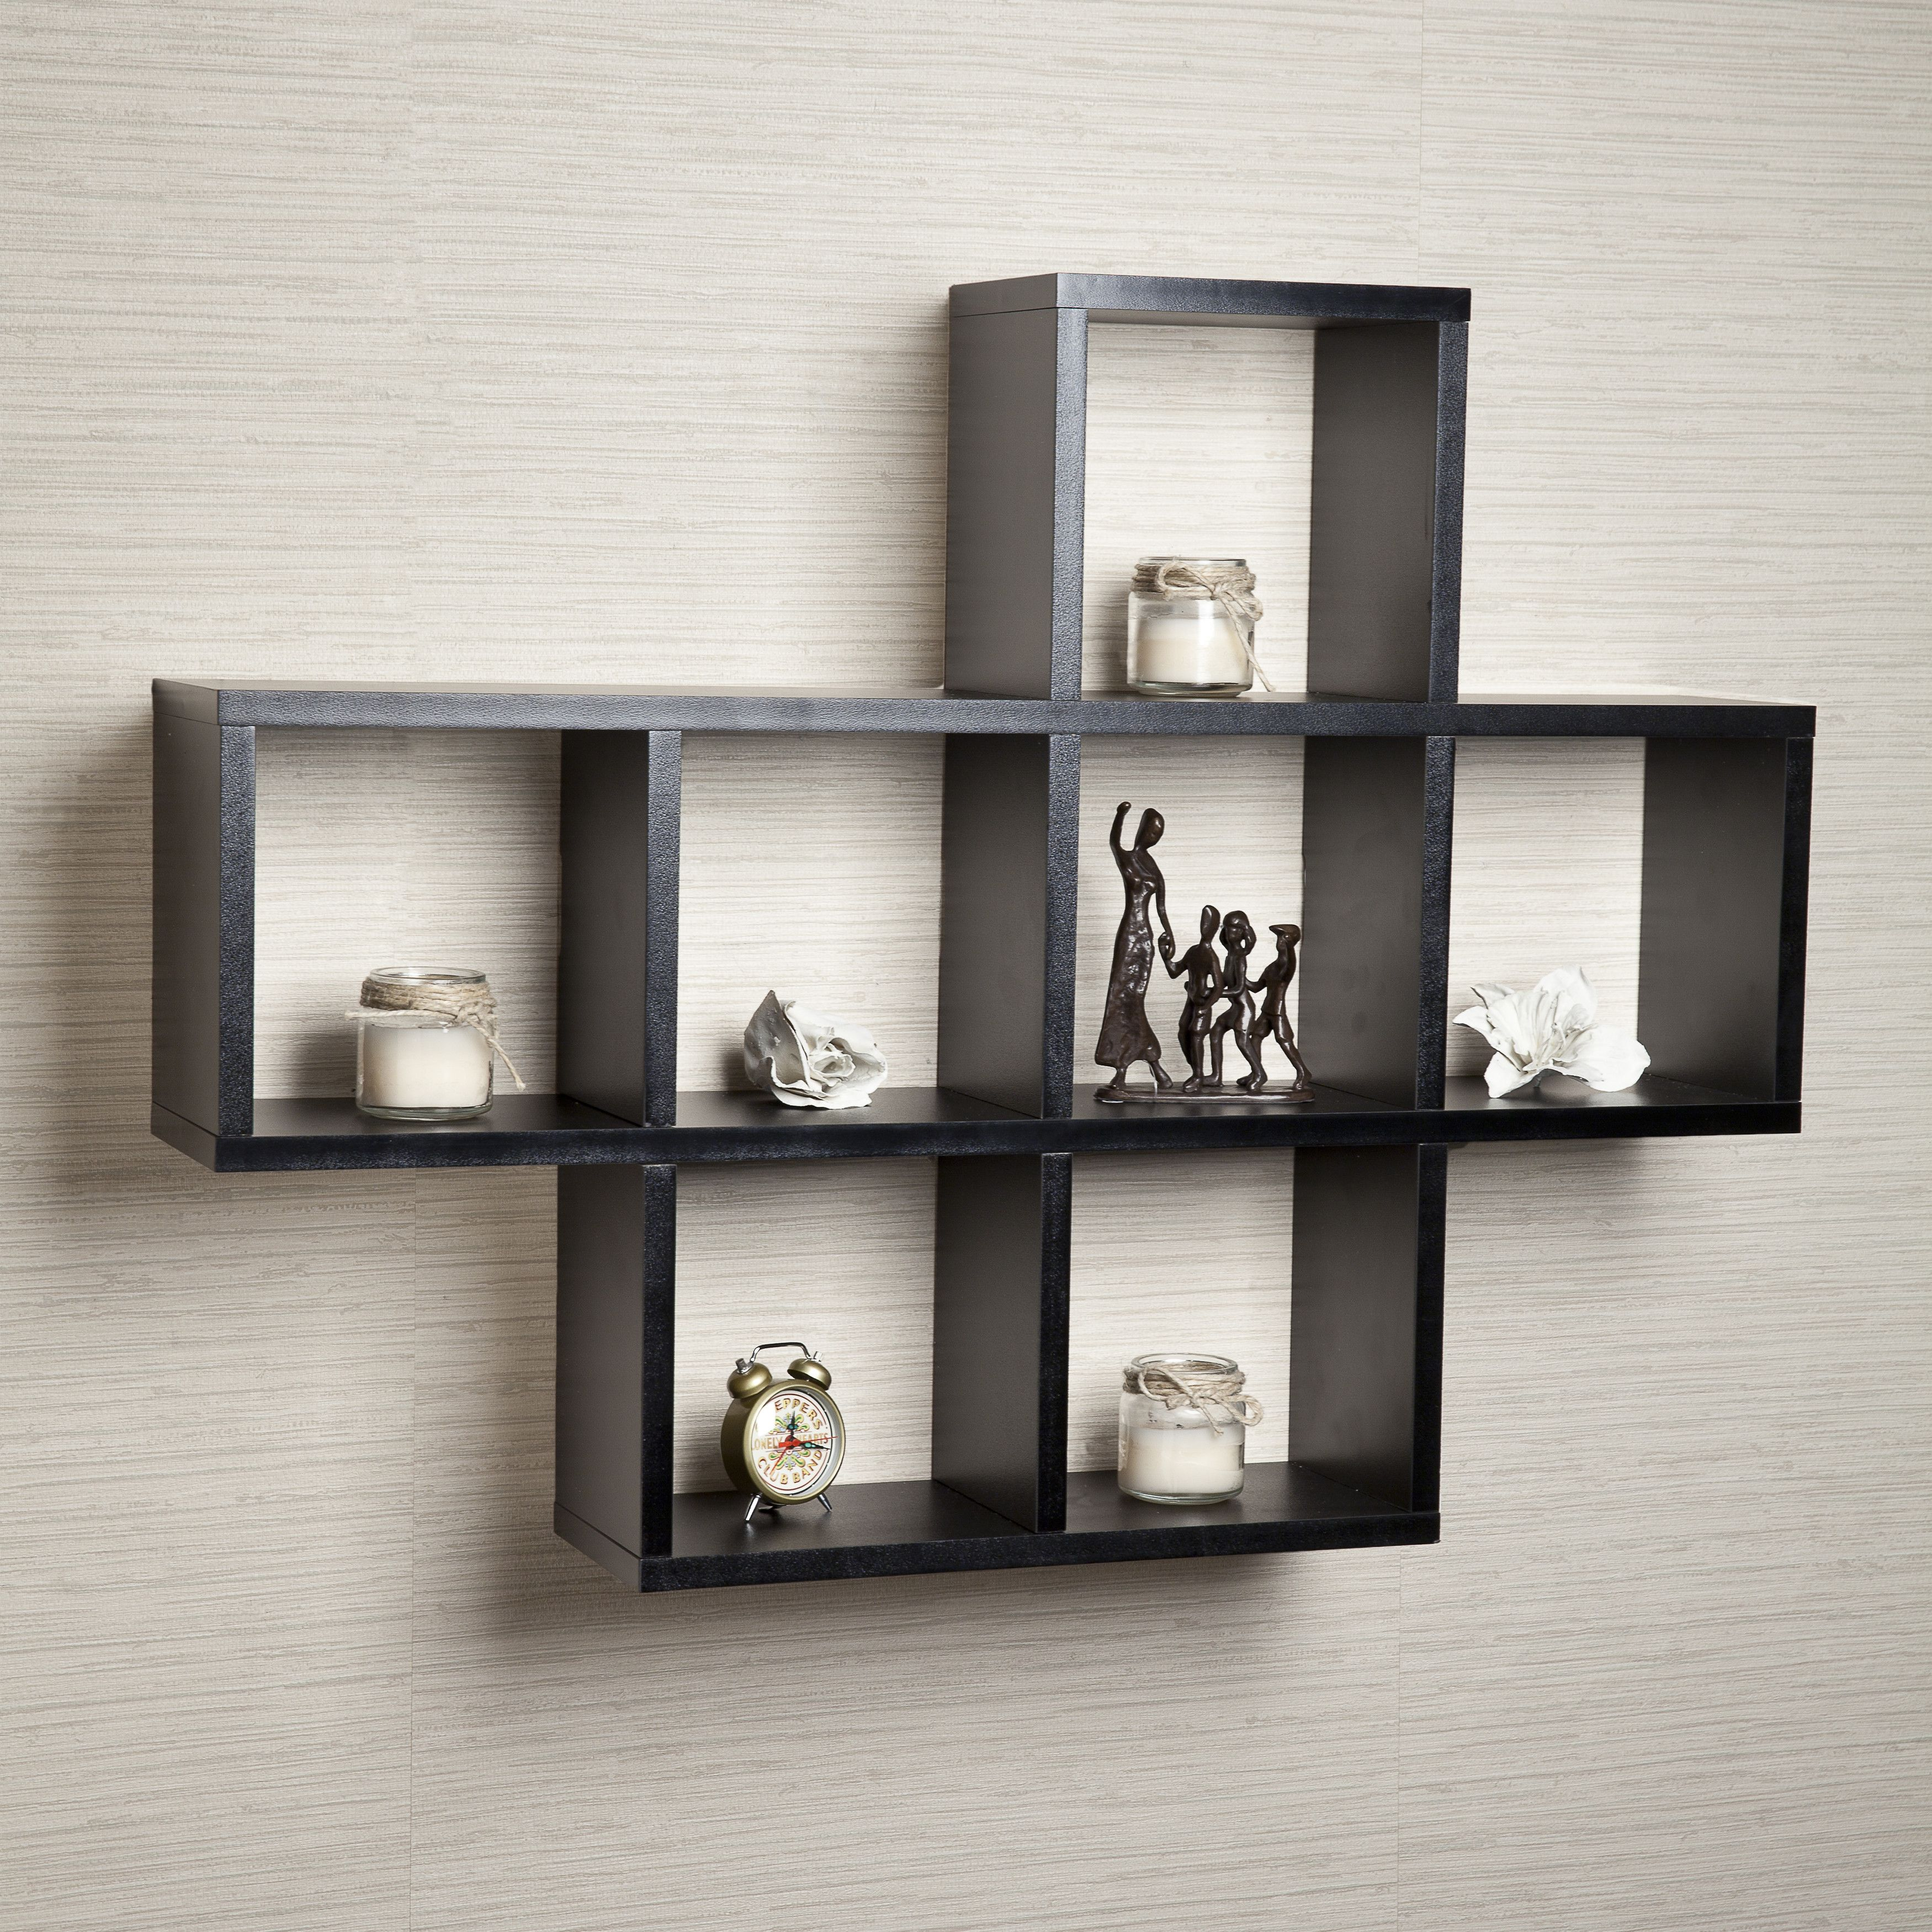 Cubby Wall Shelf  Home Ideas  Pinterest  Shelves And Walls Unique Design Wall Units For Living Room Design Ideas